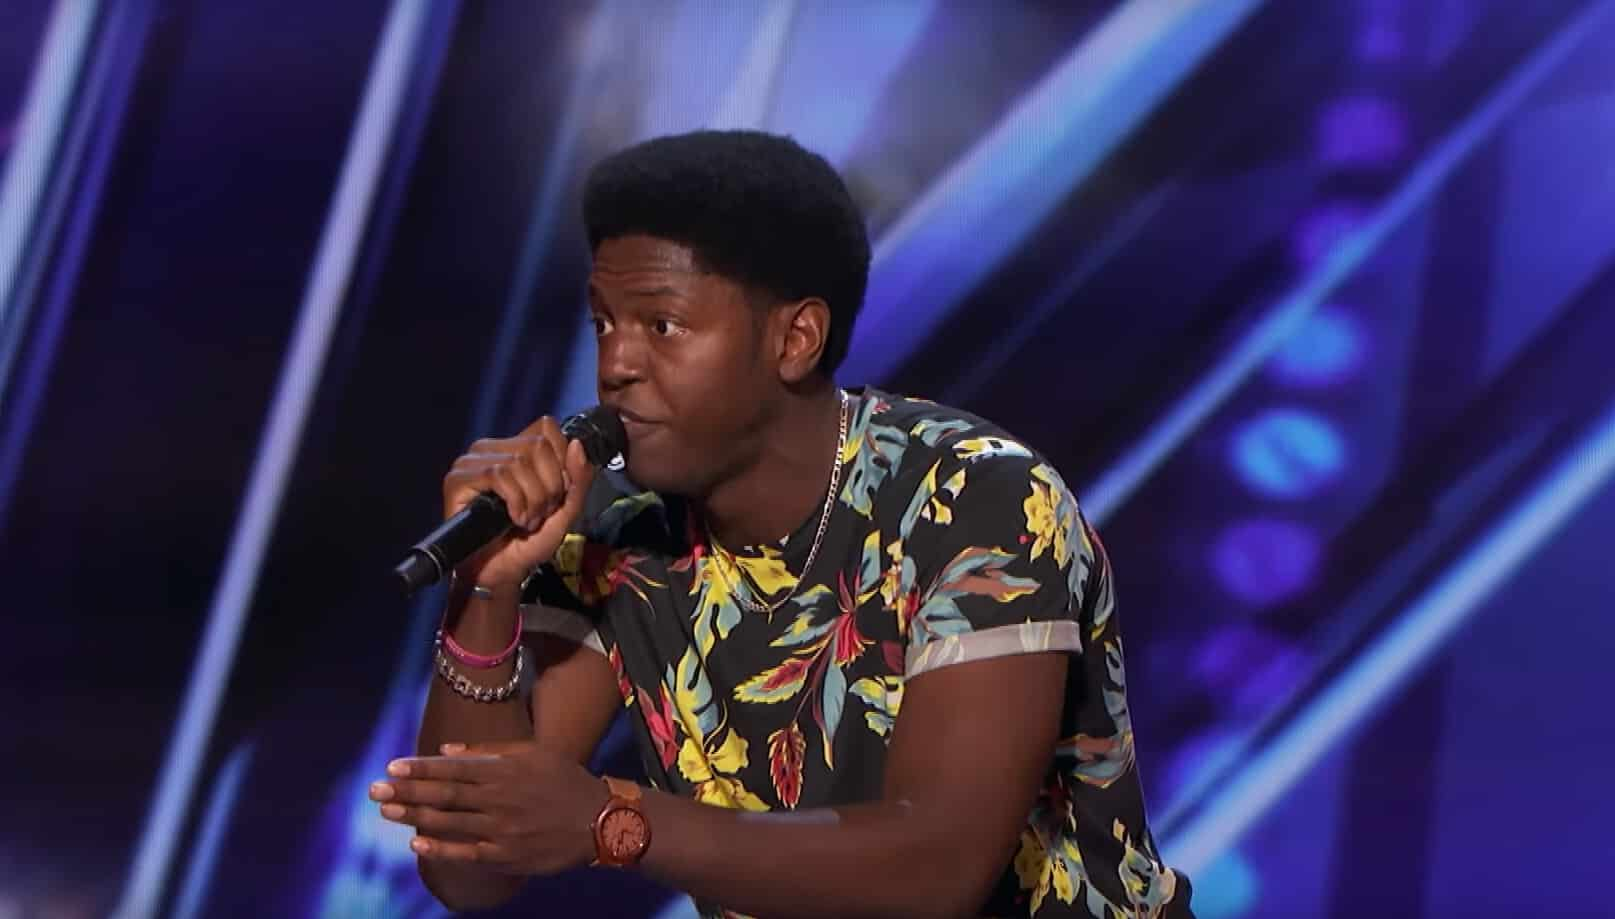 joseph allen wins golden buzzer for song